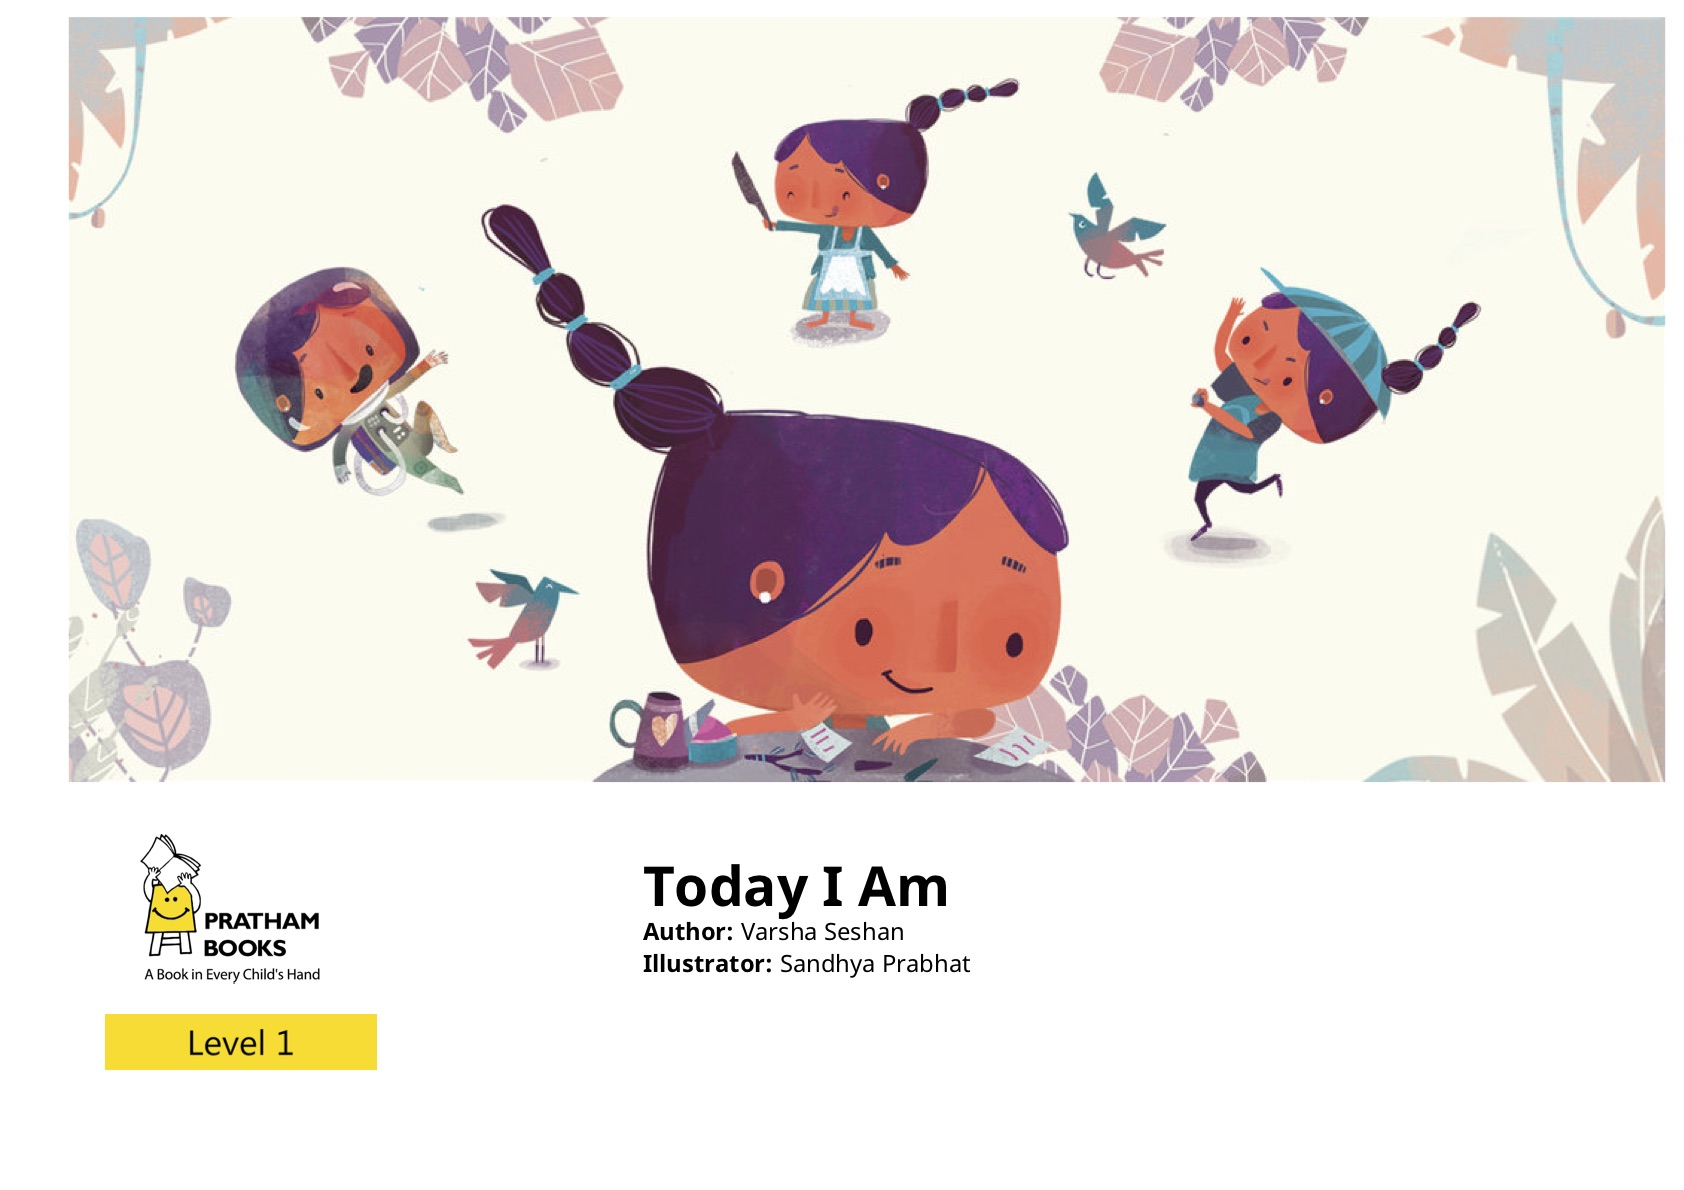 Today I Am - picture book